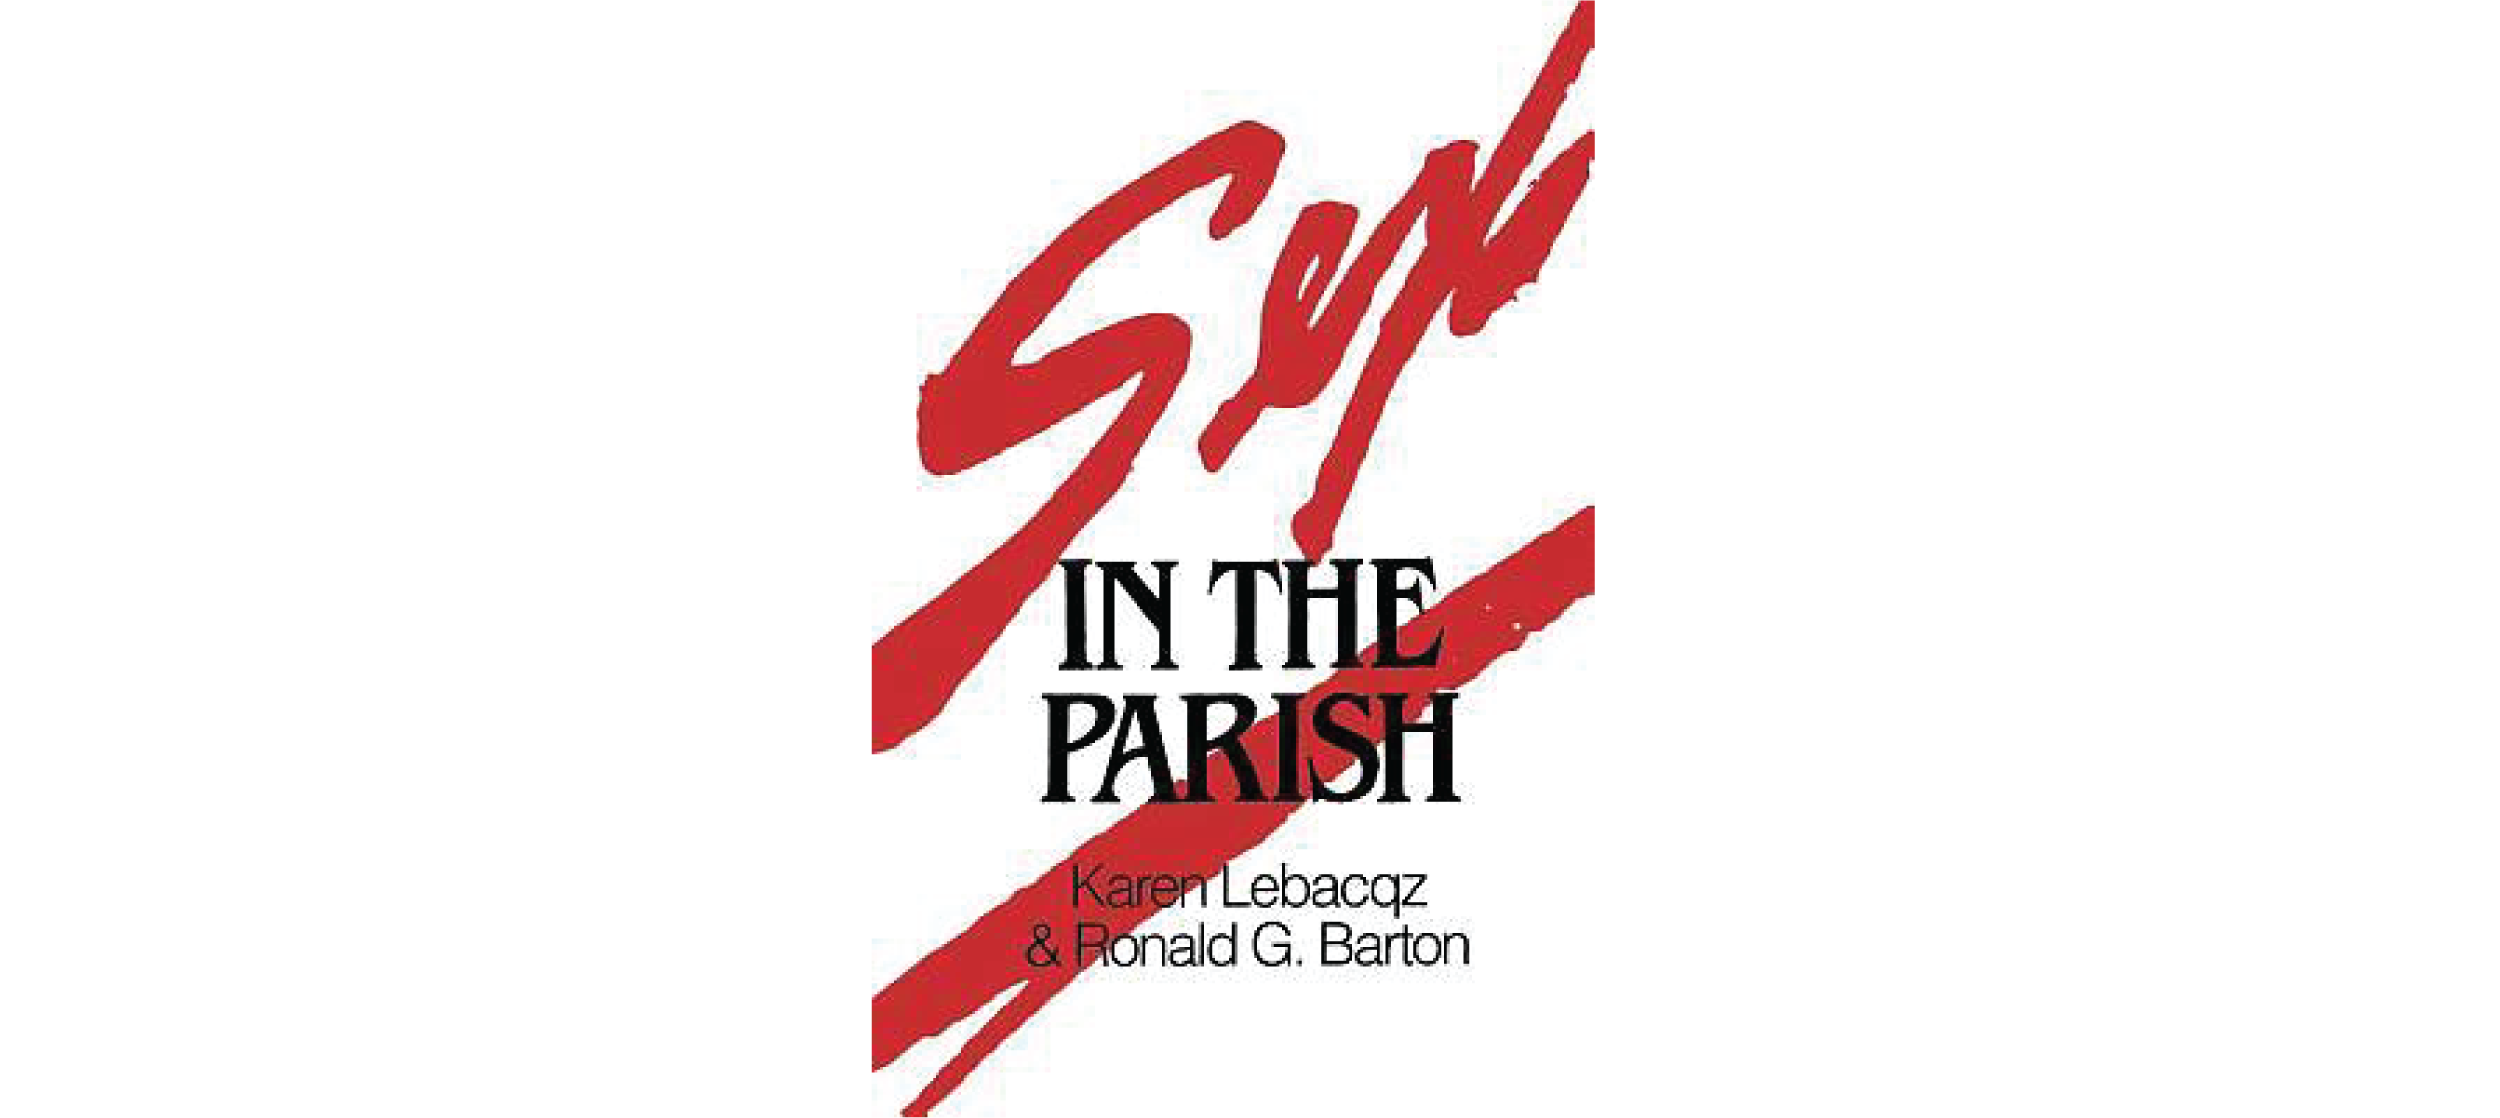 Sex in the Parish by Karen Lebacqz and Ronald Barton